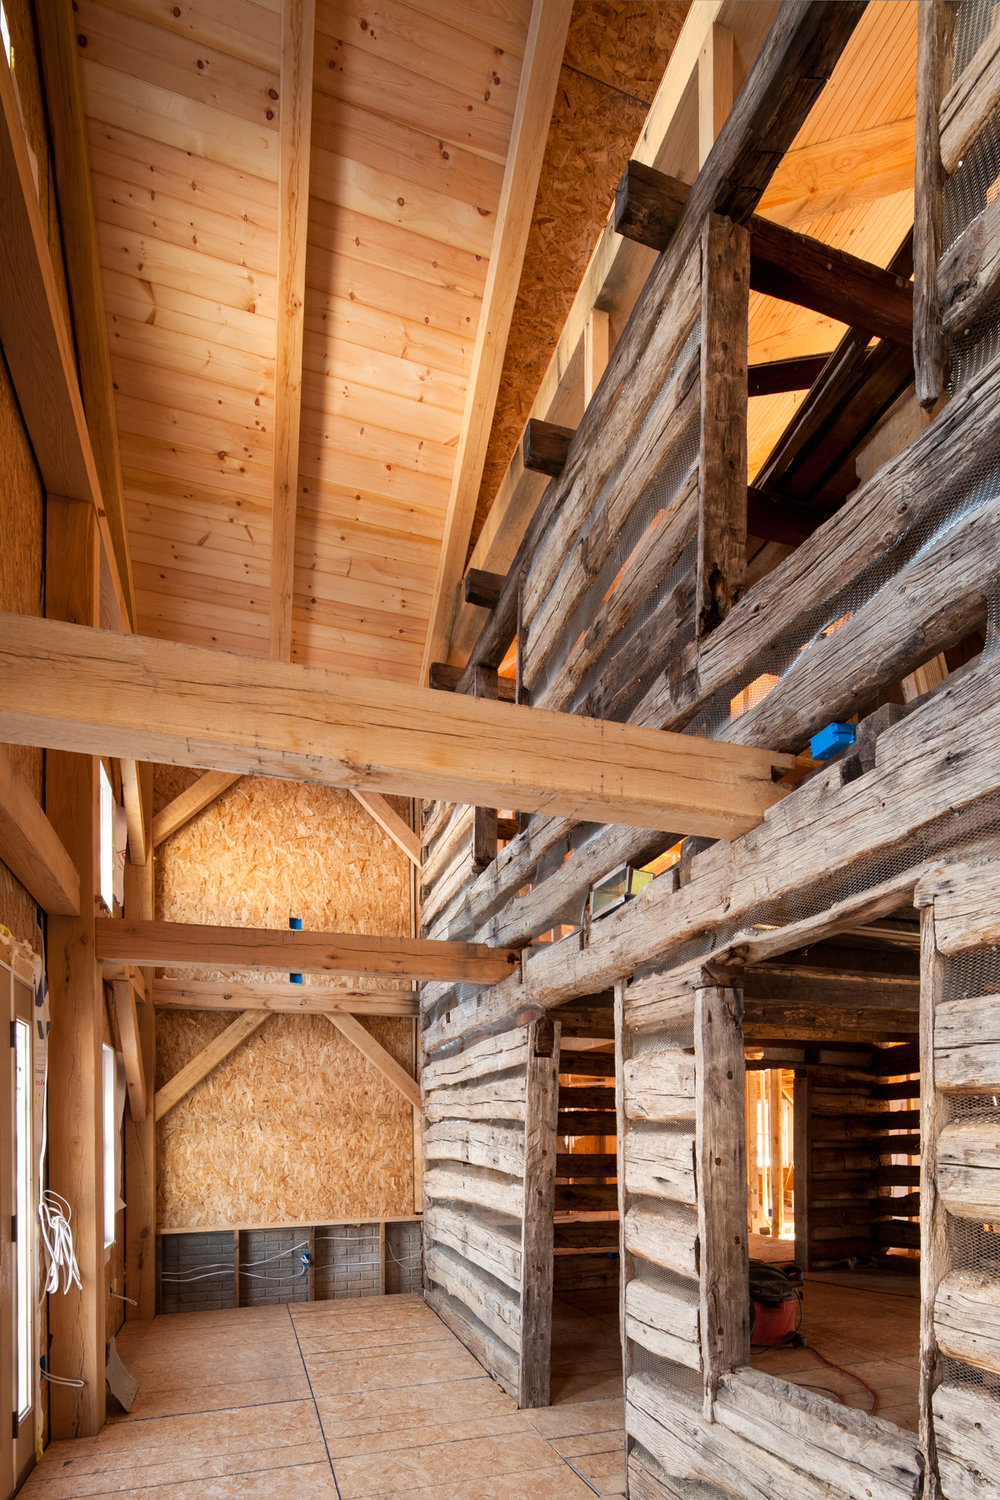 Timber framed barn, Maryland